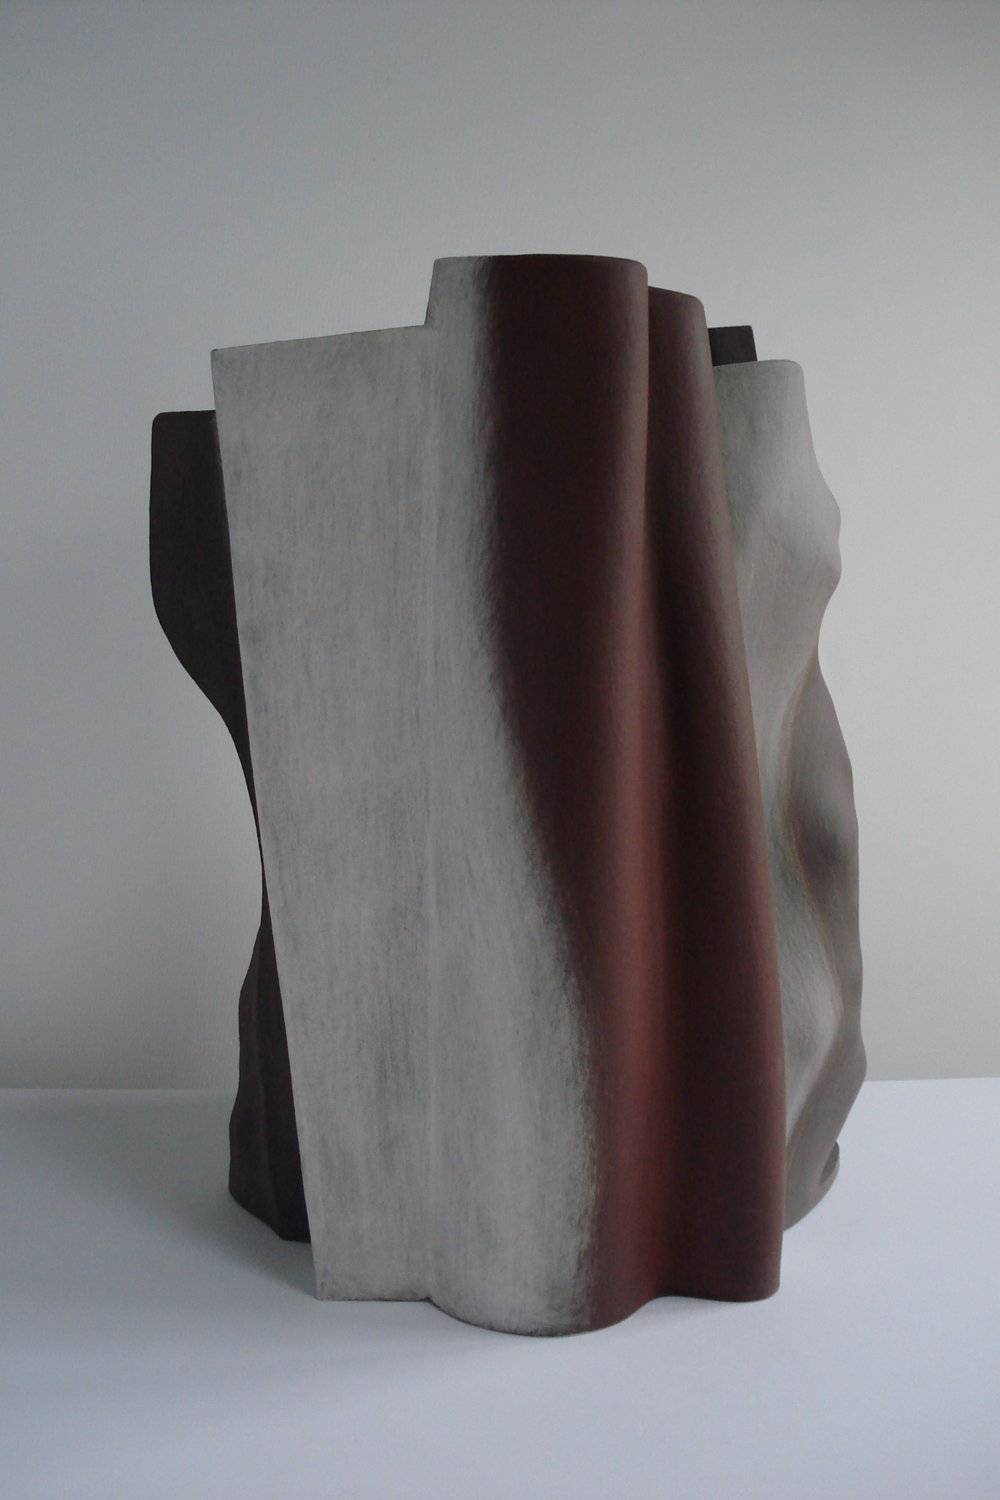 Slow burn, 2007, 47cm high